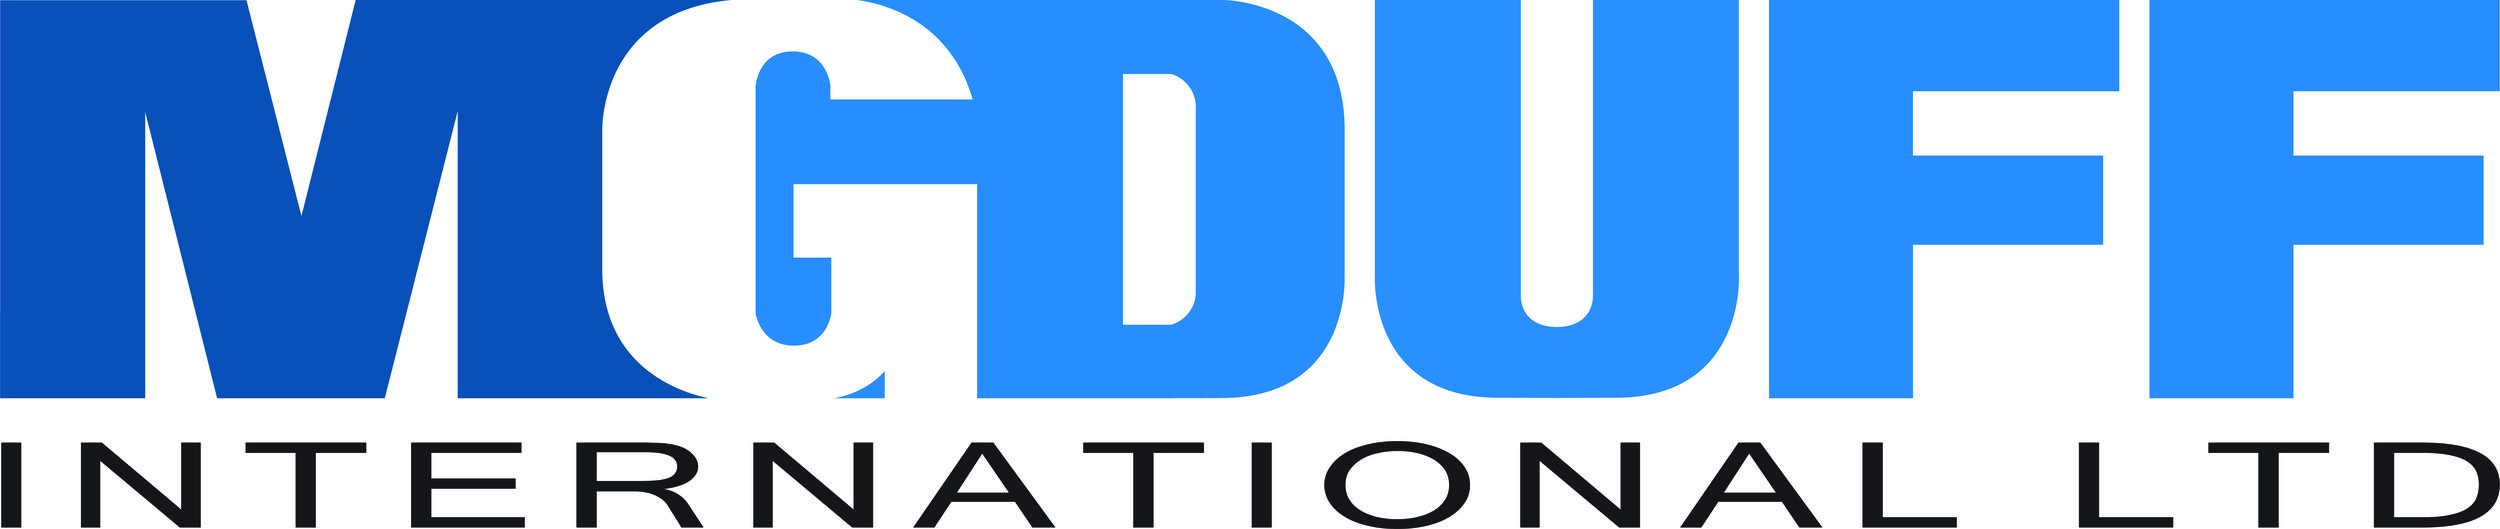 MGDUFF INTERNATIONAL-Logo-Design-1.jpg